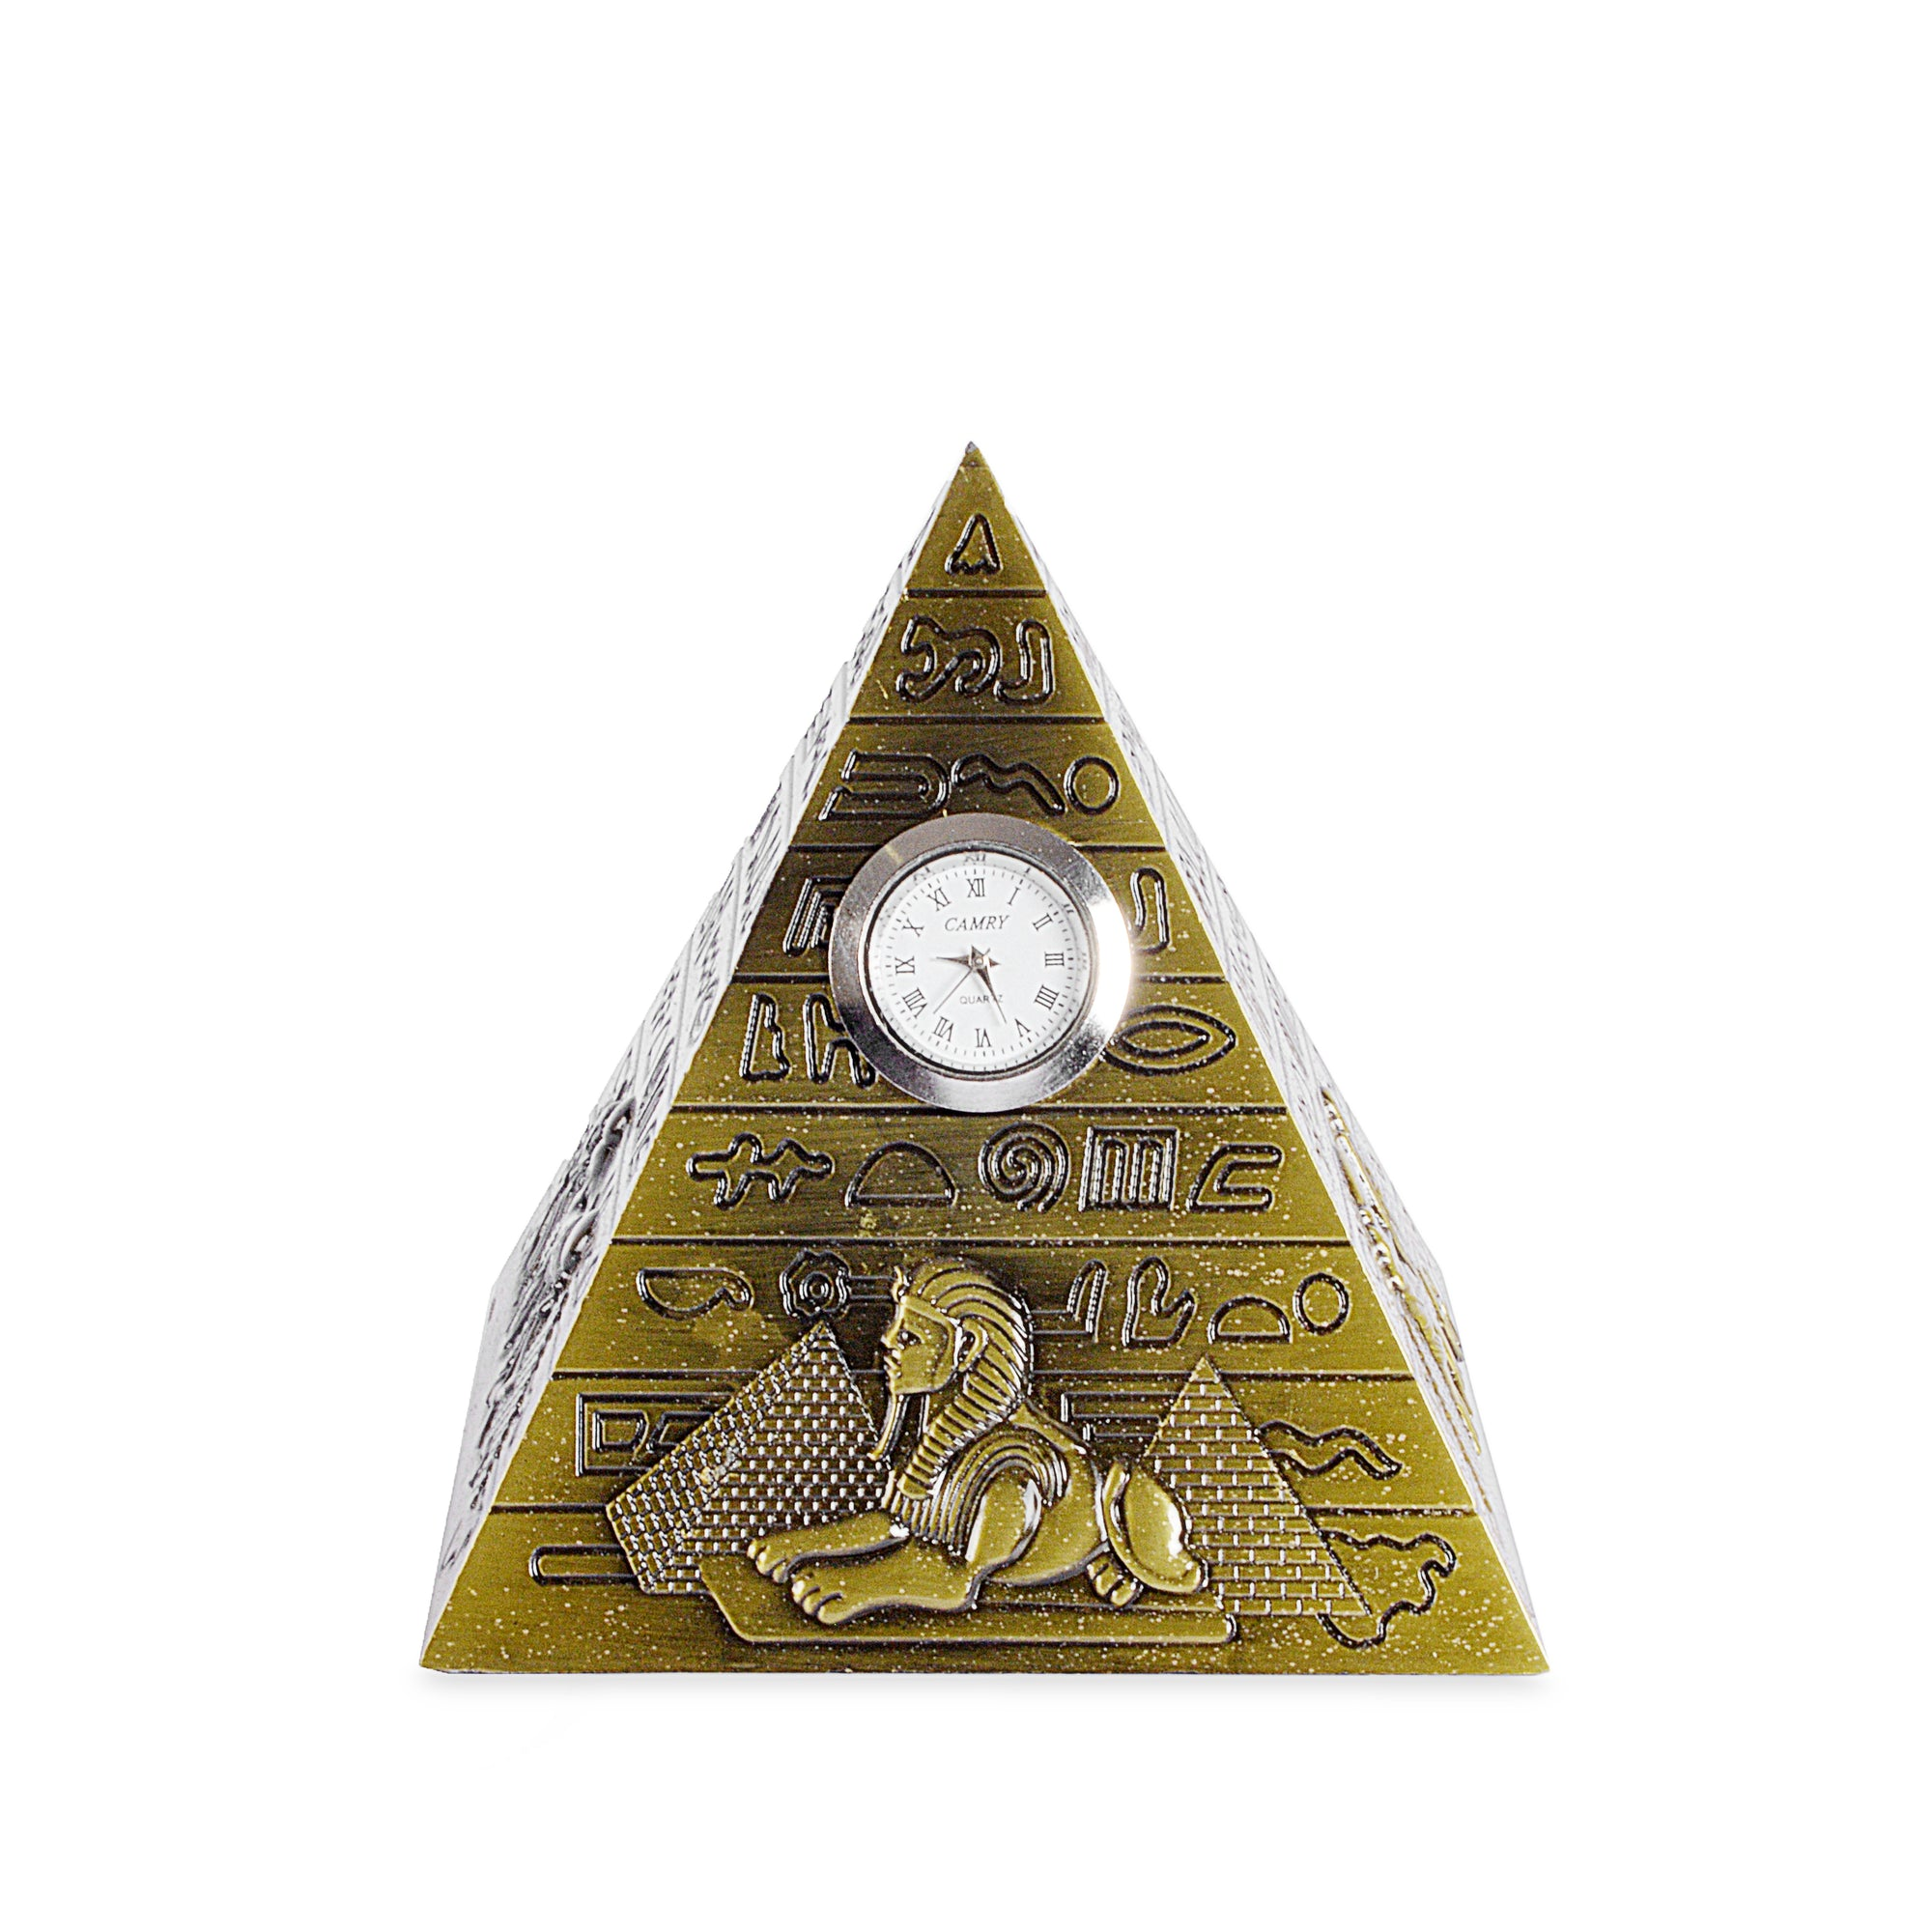 Decorative Egypt Metal Pyramid Design Clock